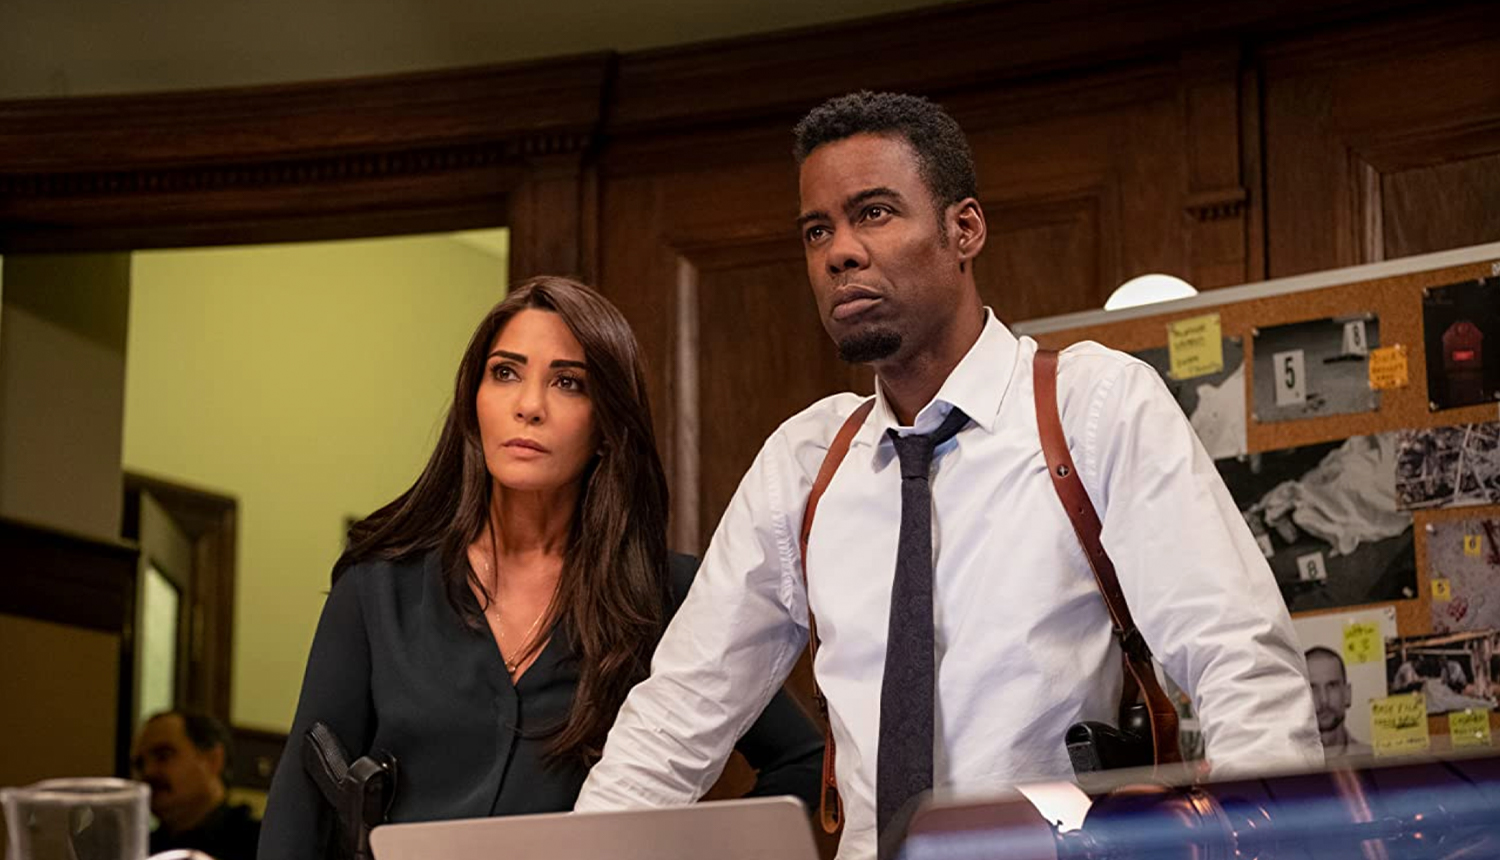 Chris Rock and Marisol Nichols in Spiral